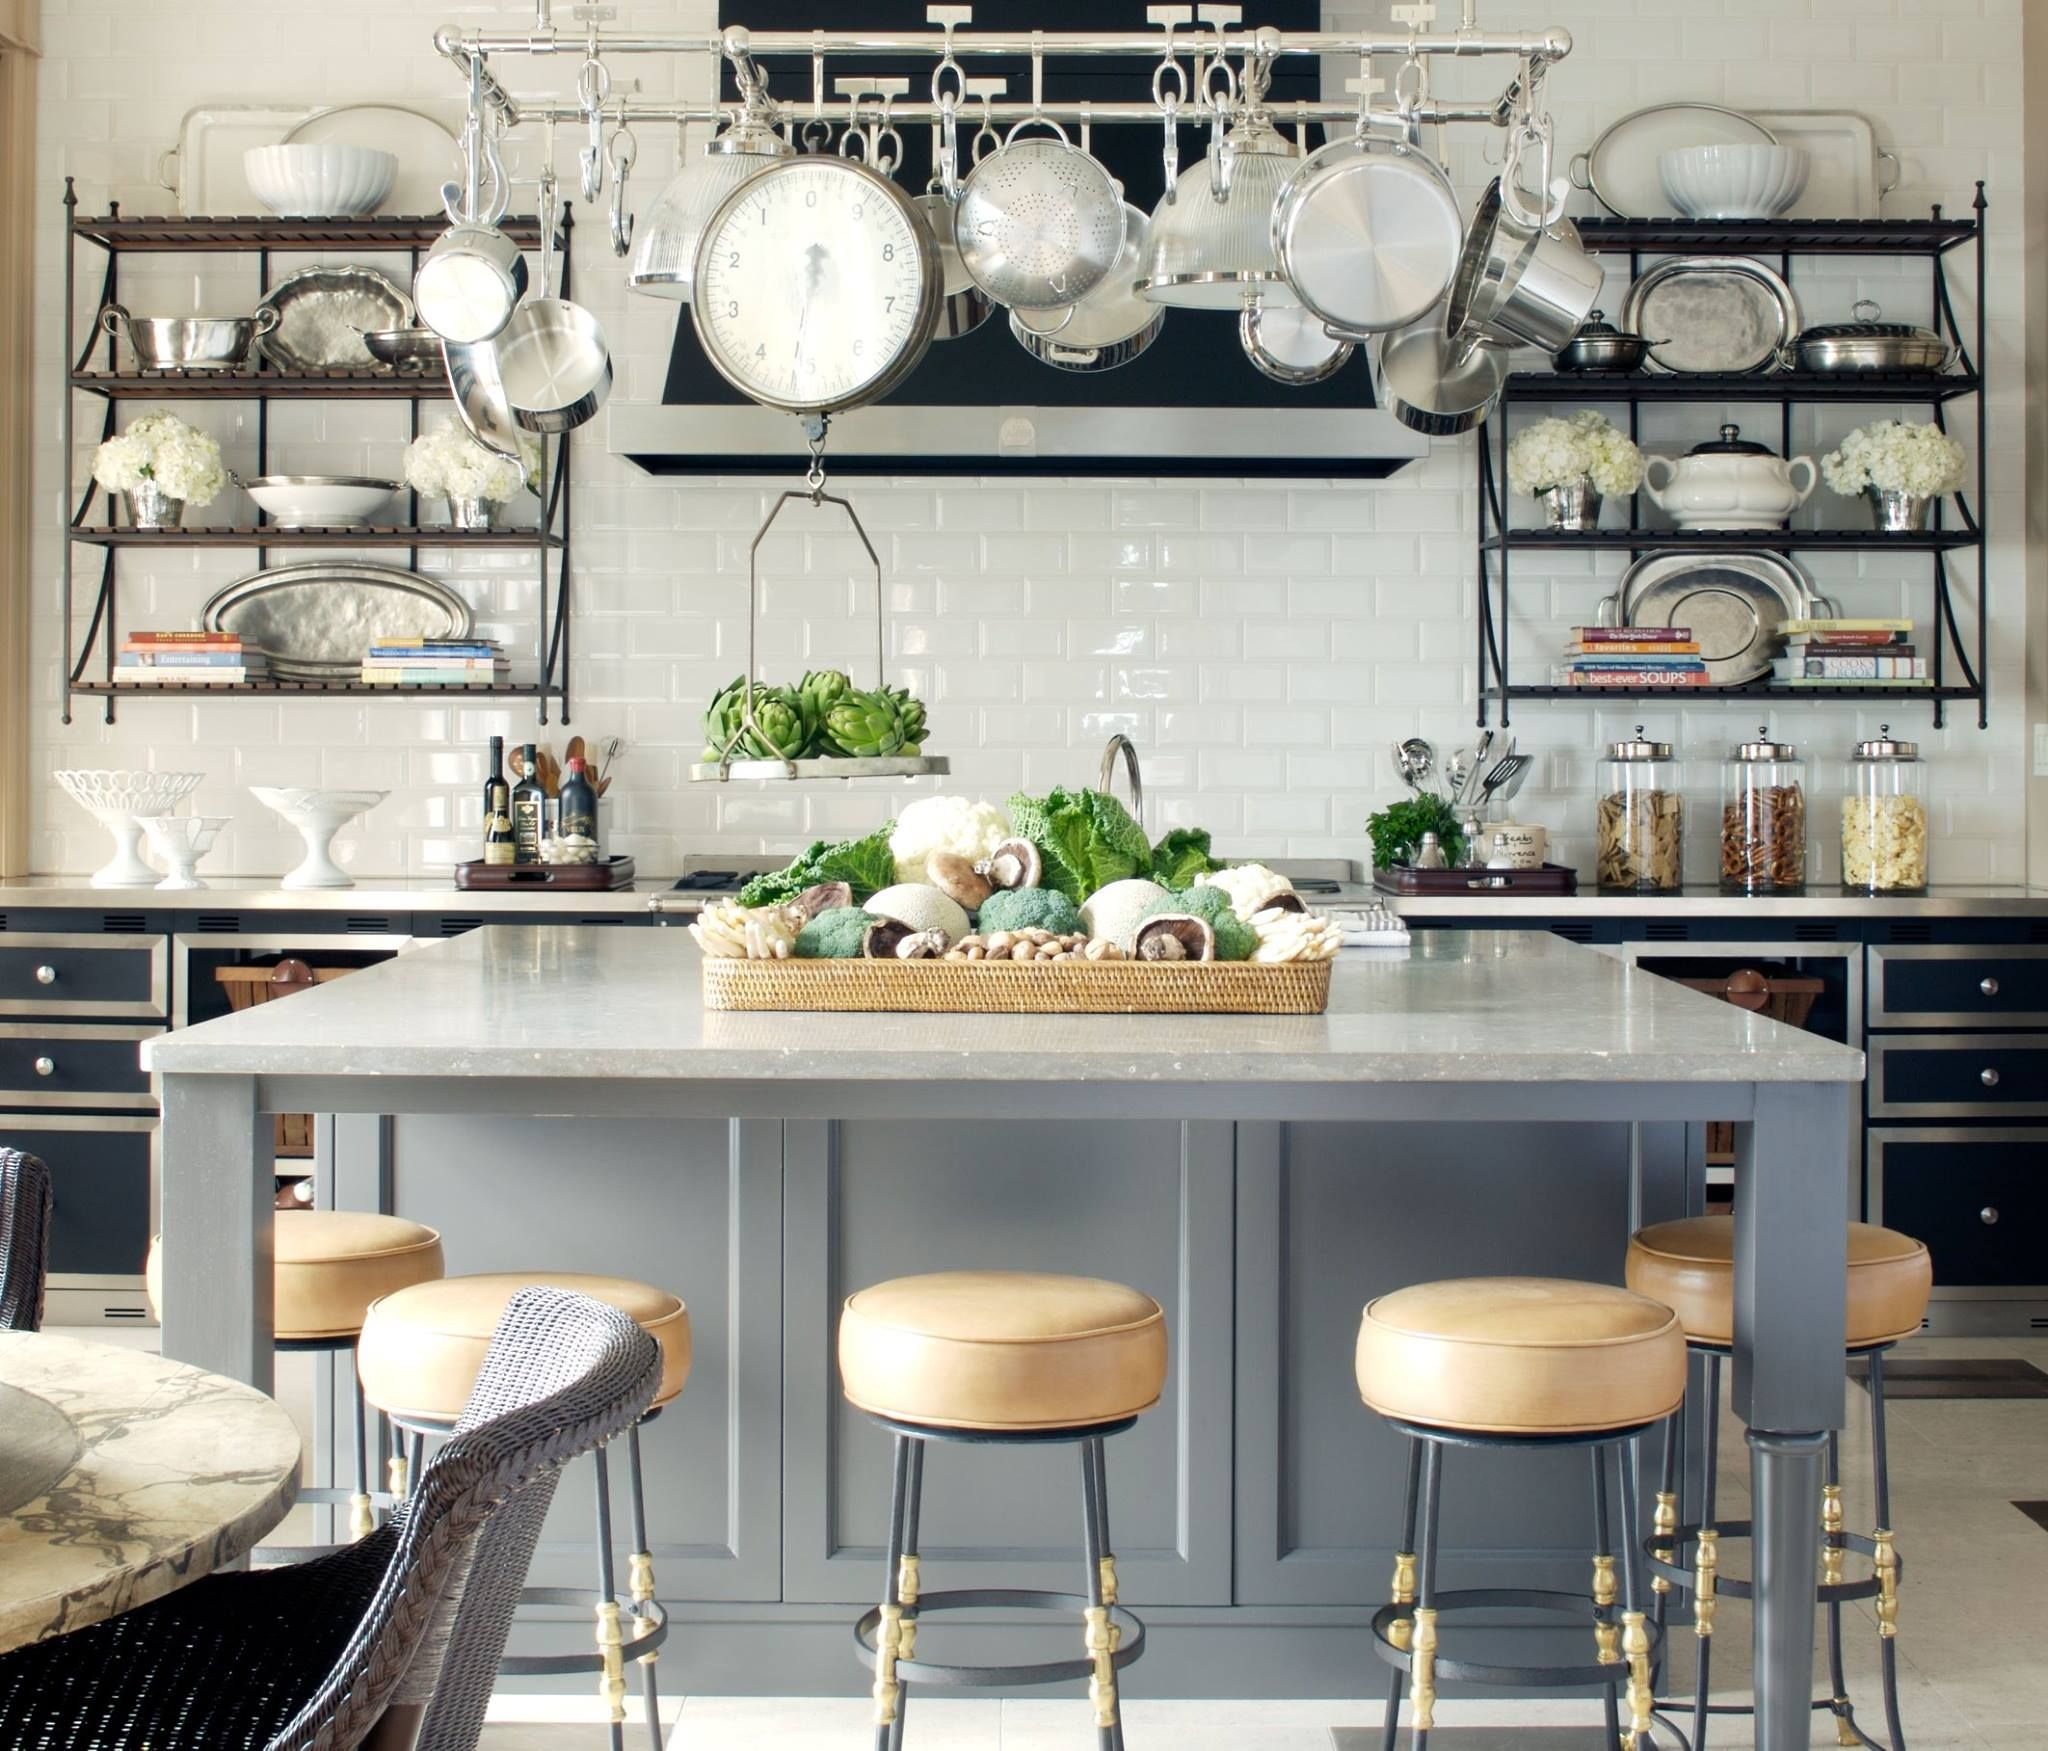 Industrial Kitchen, Gray Island, Marble Counters, Black Cabinets, Pot Rack